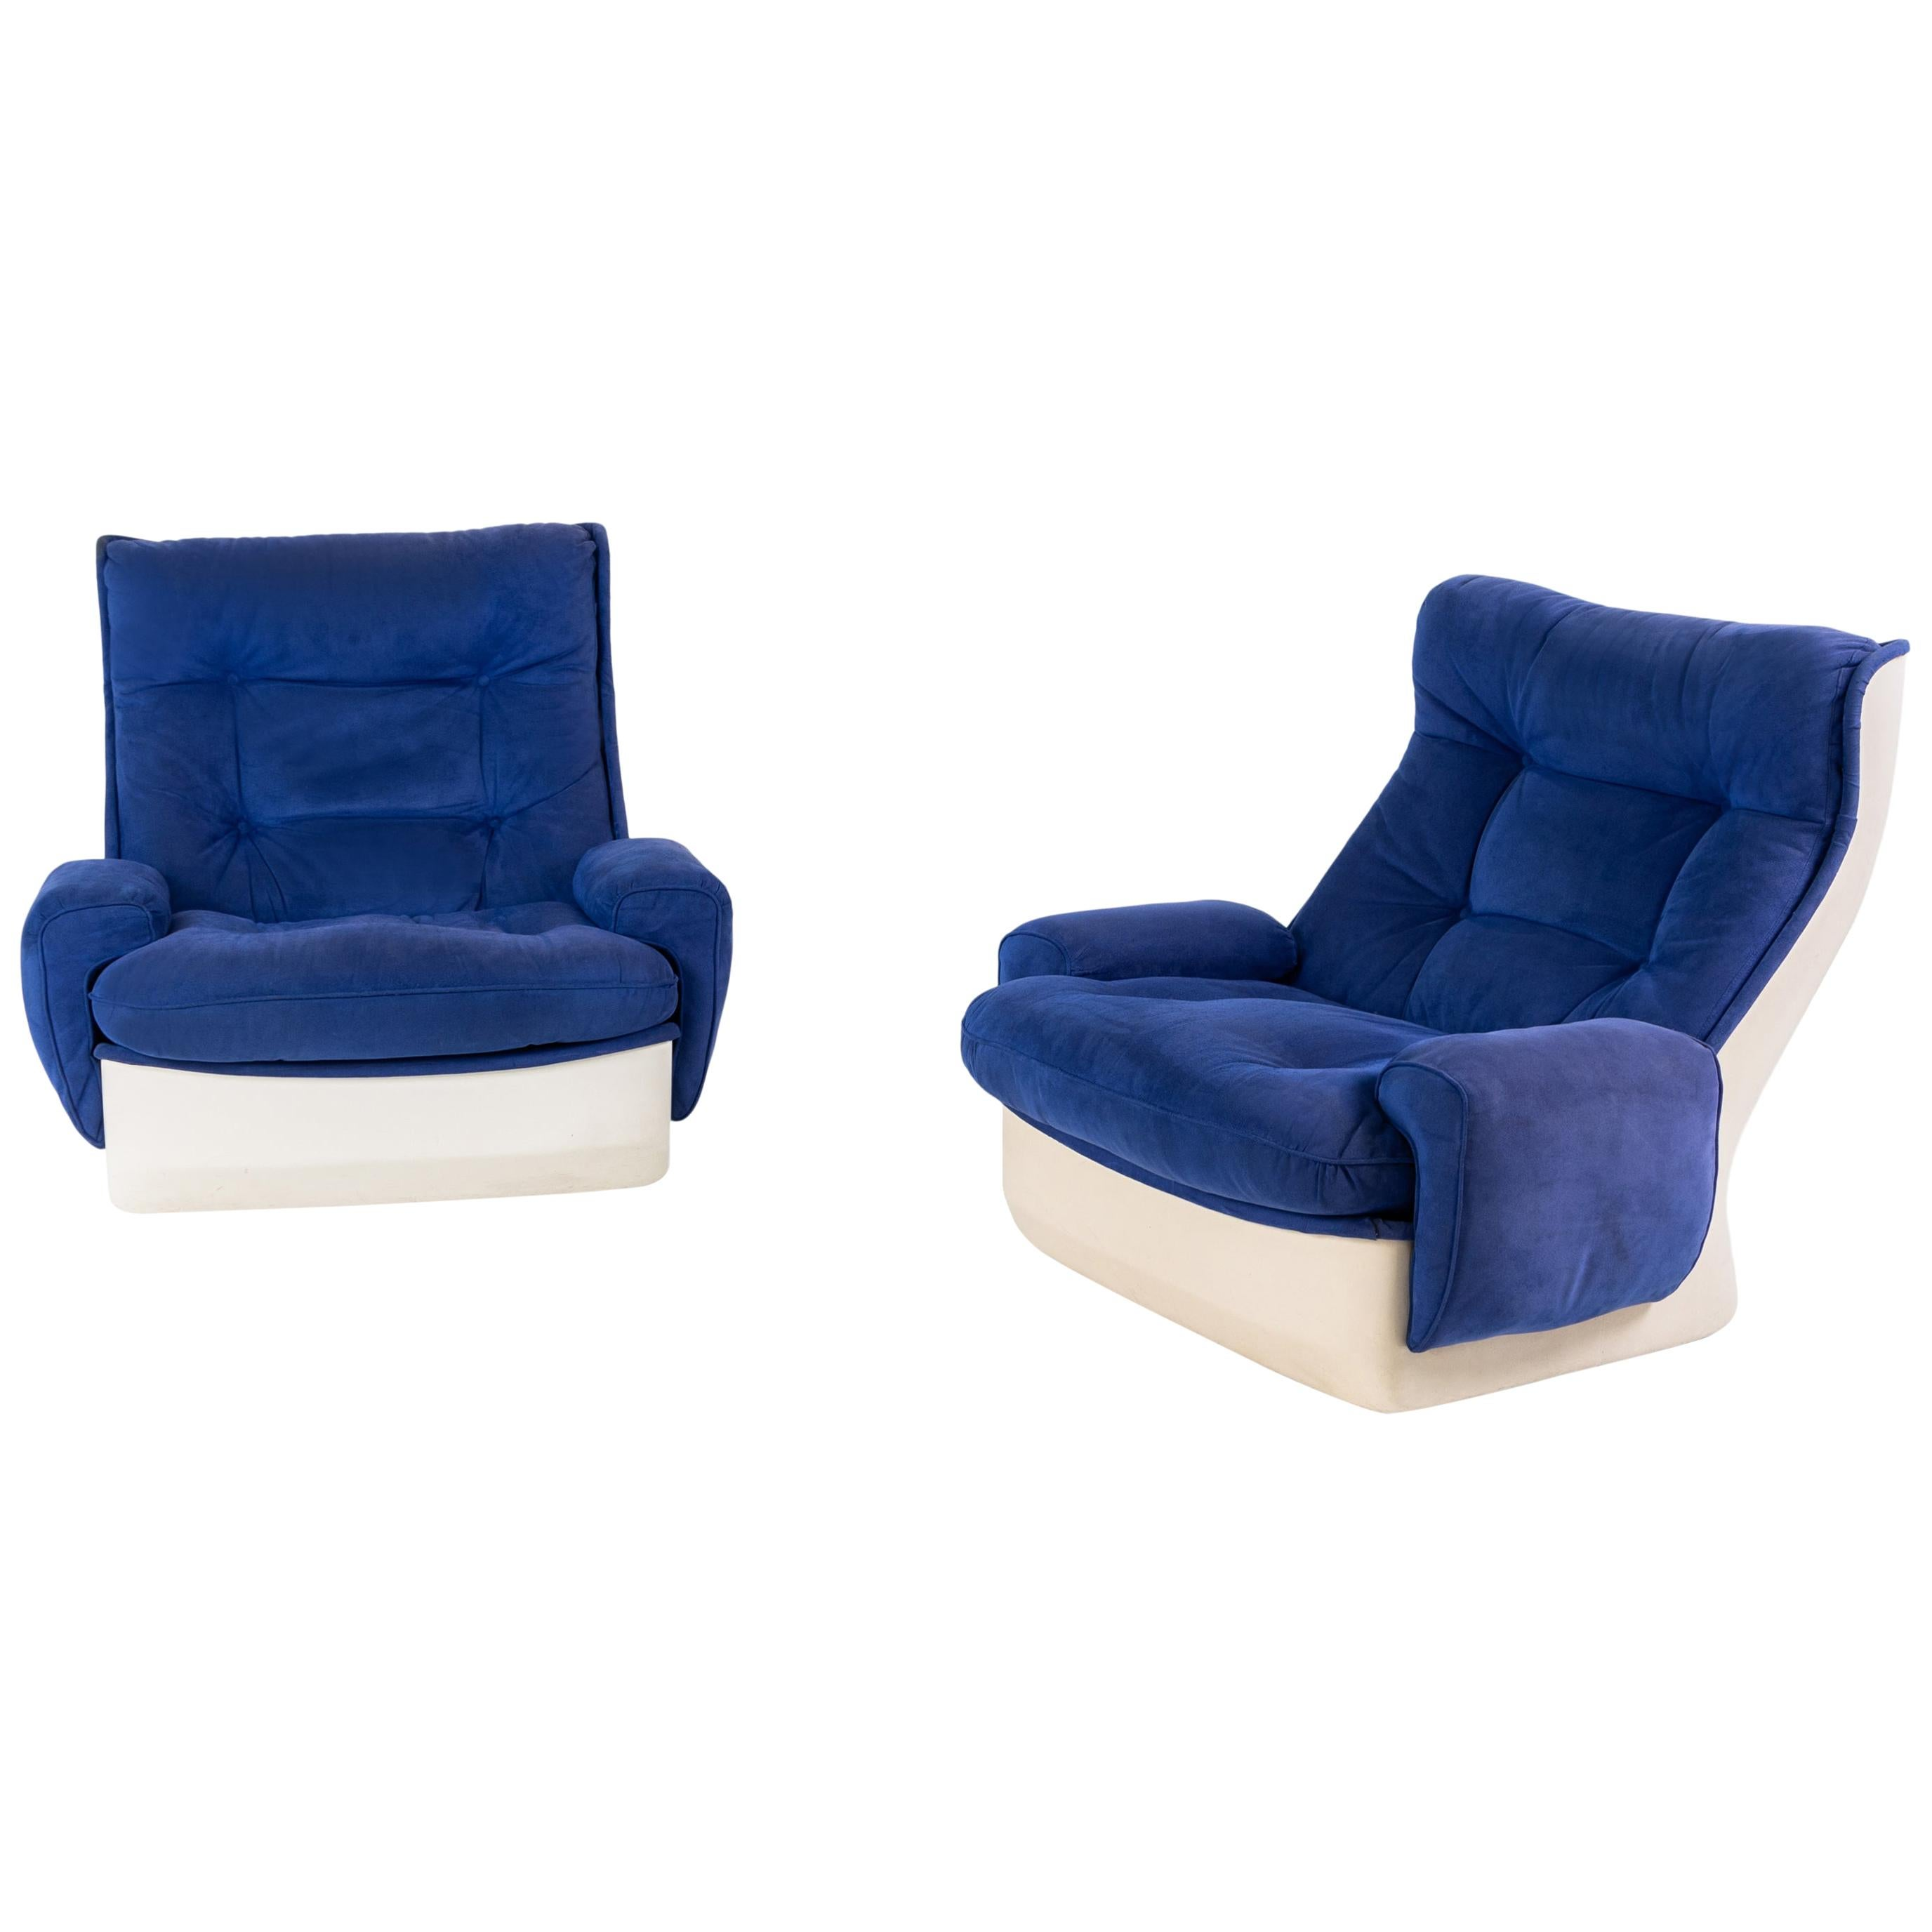 Orchidée Lounge Chairs by Michel Cadestin, Mid-20th Century